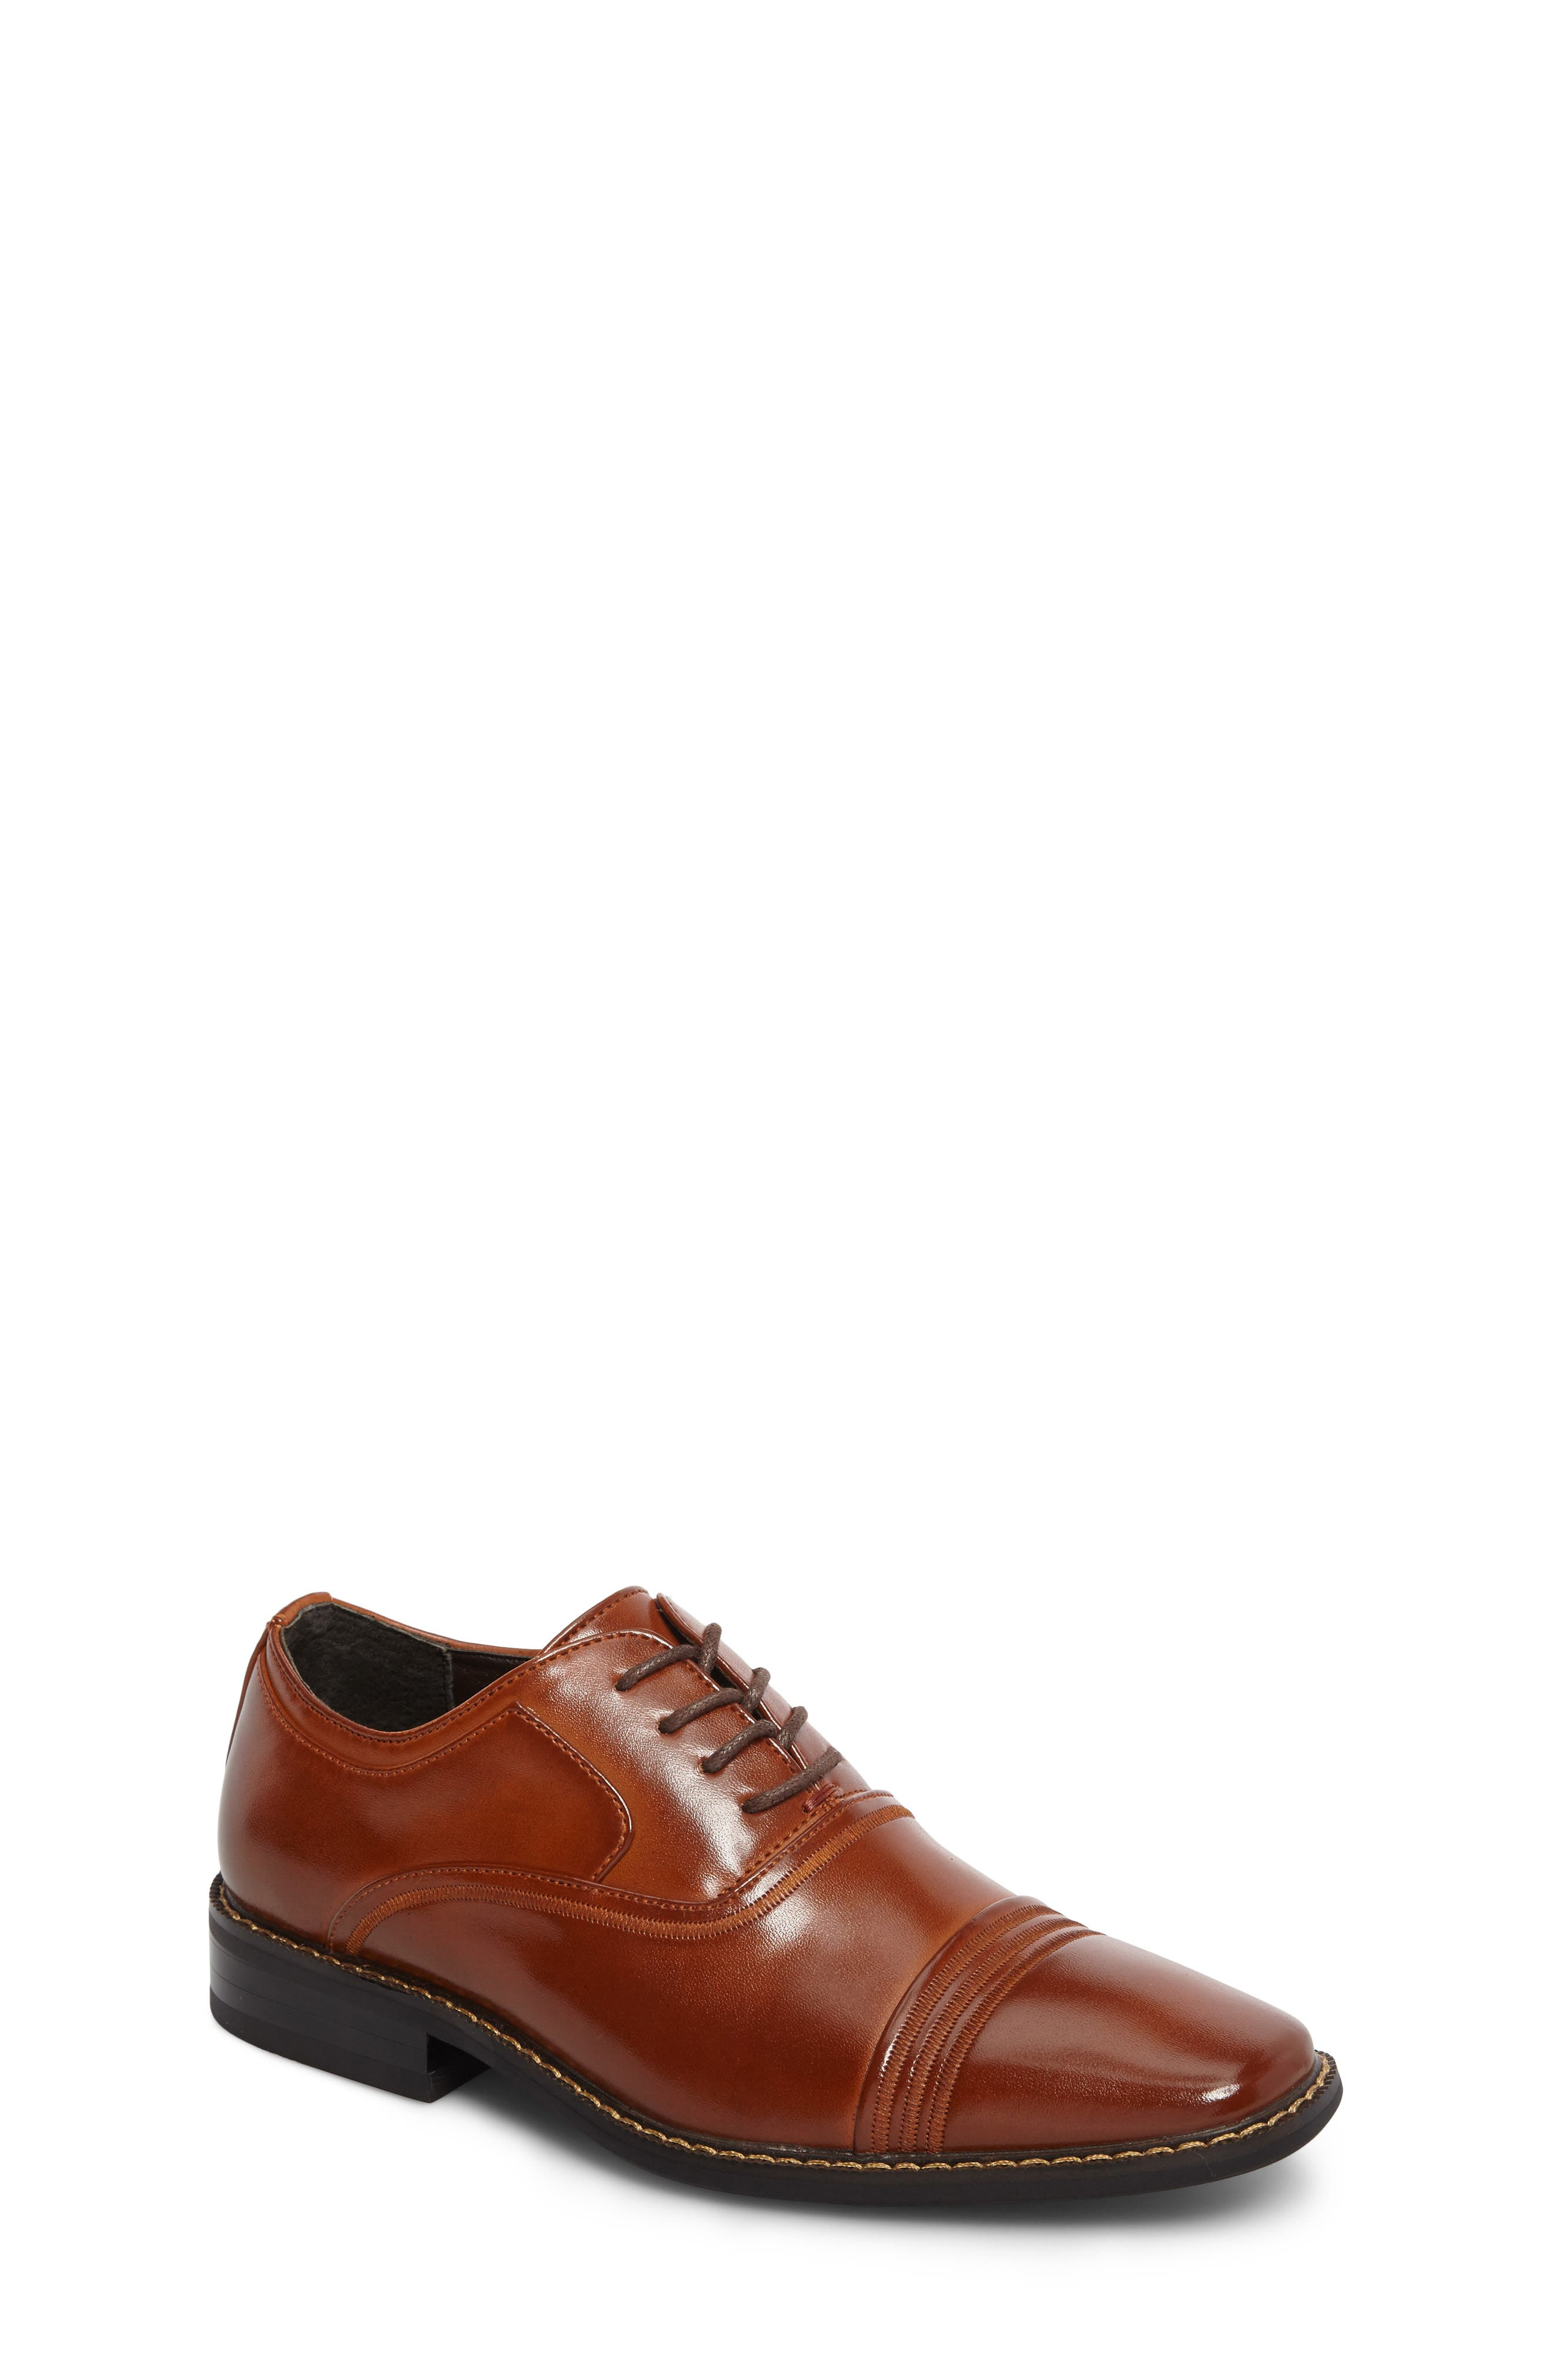 Main Image - Stacy Adams Bingham Cap Toe Oxford (Toddler, Little Kid & Big Kid)